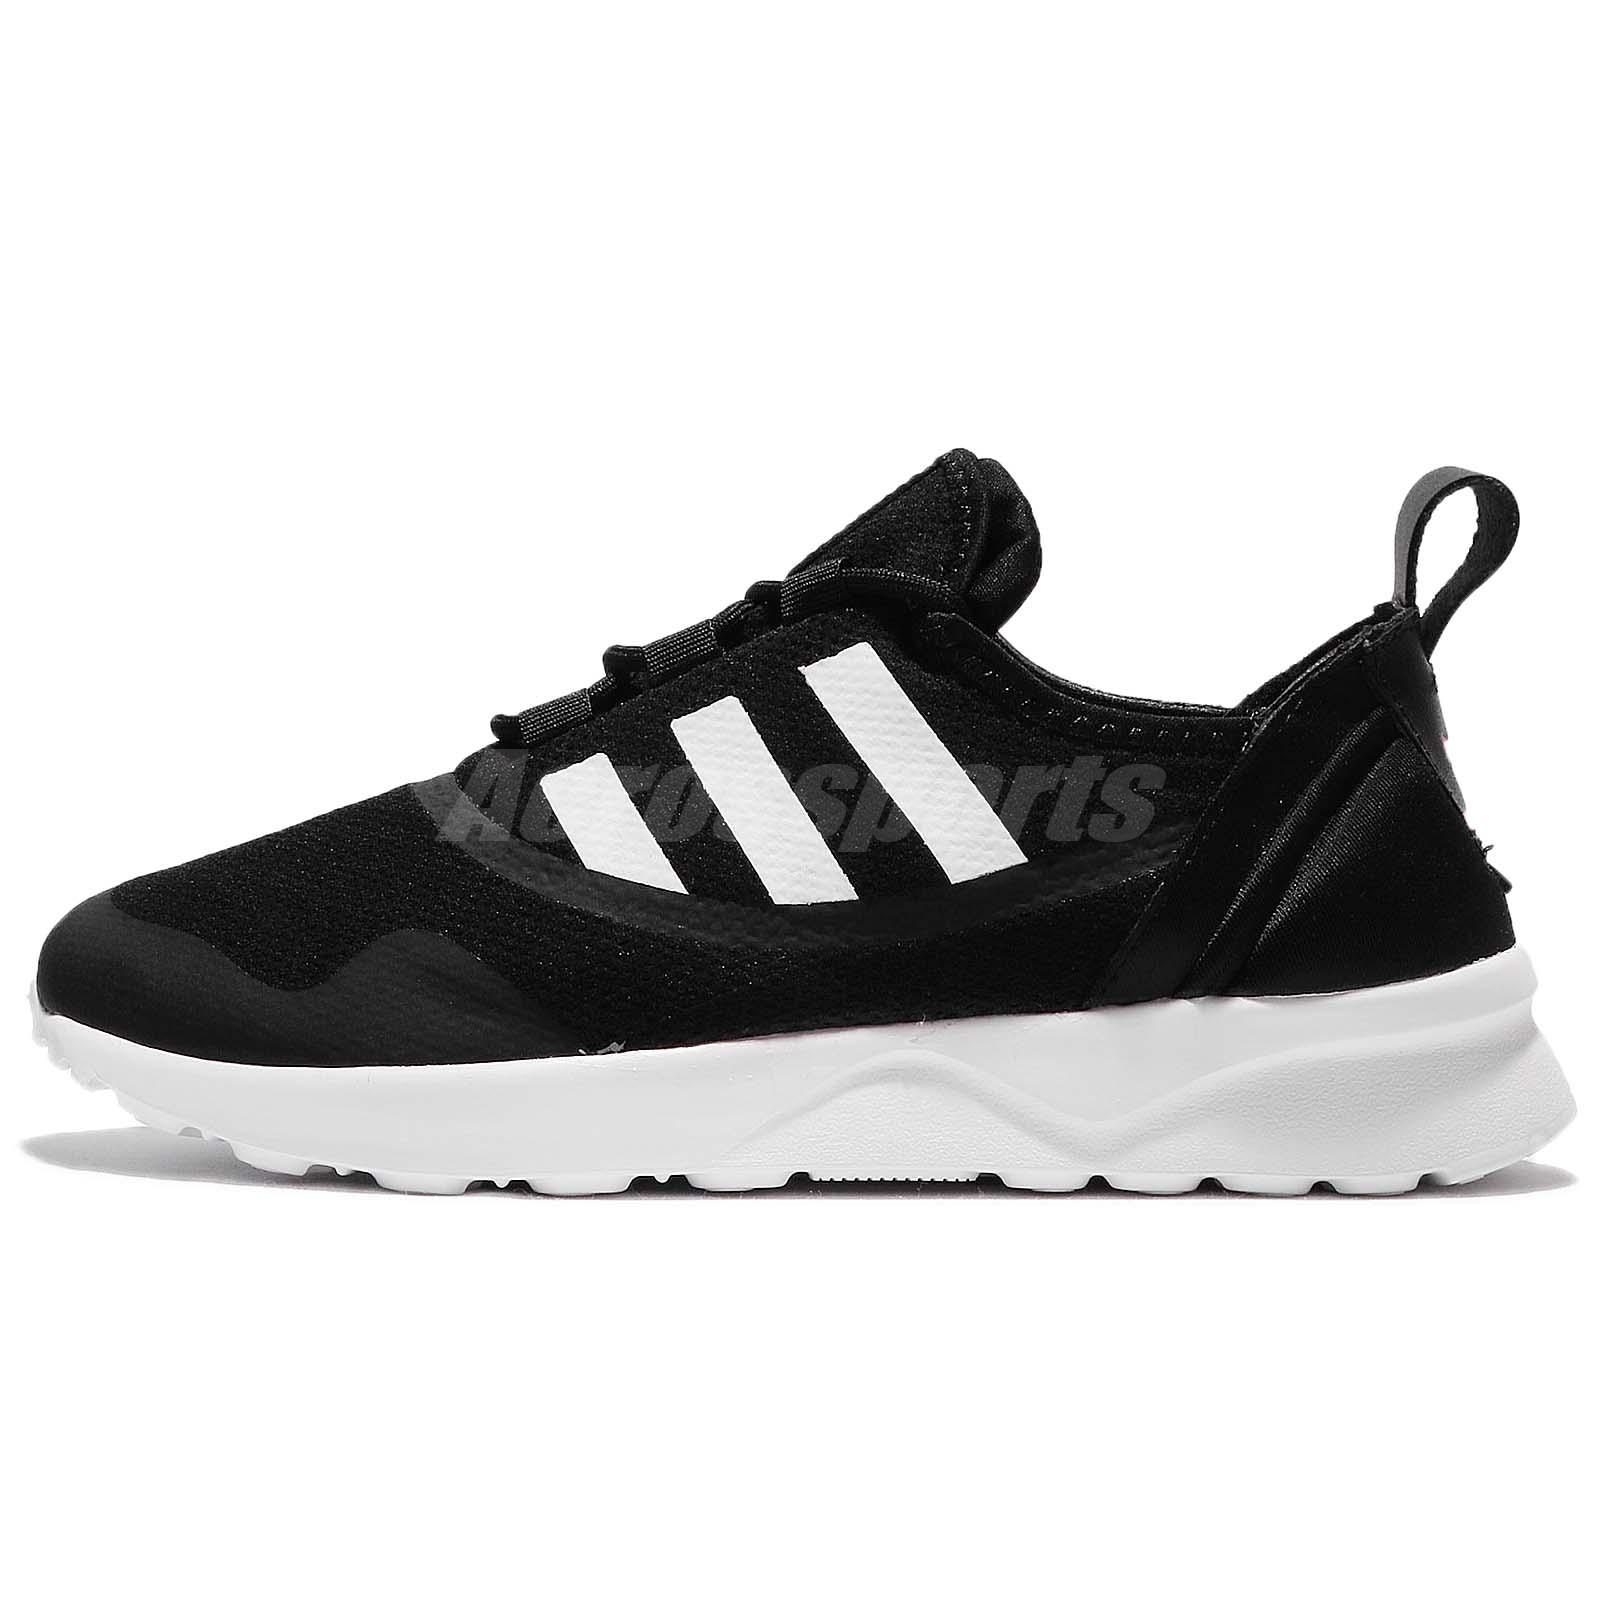 new product 1bb11 9467e adidas Originals ZX Flux ADV Virtue W Black White Women Running Shoes CG4090